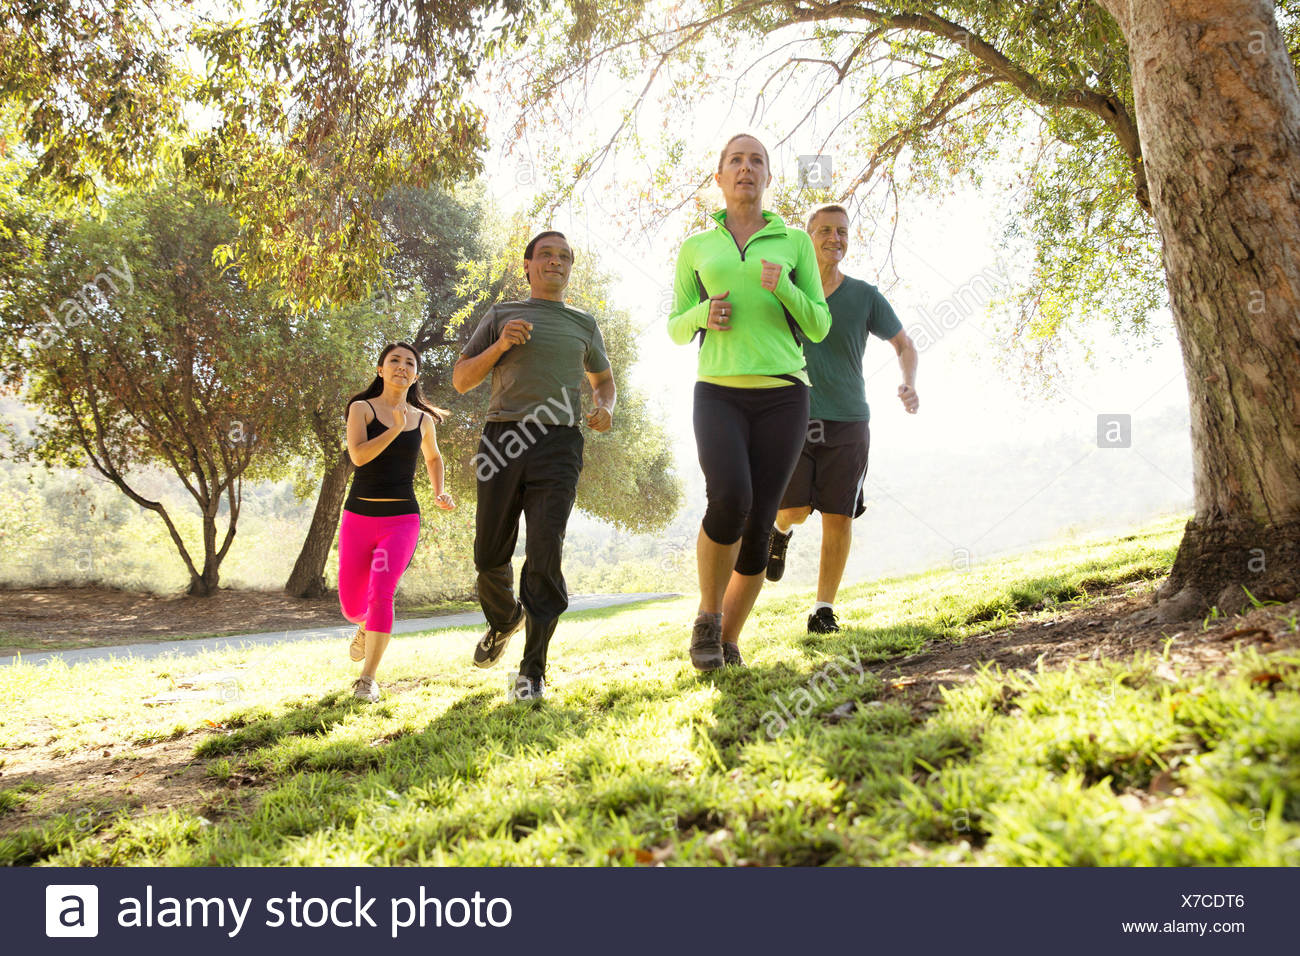 Four mature men and women running in park - Stock Image